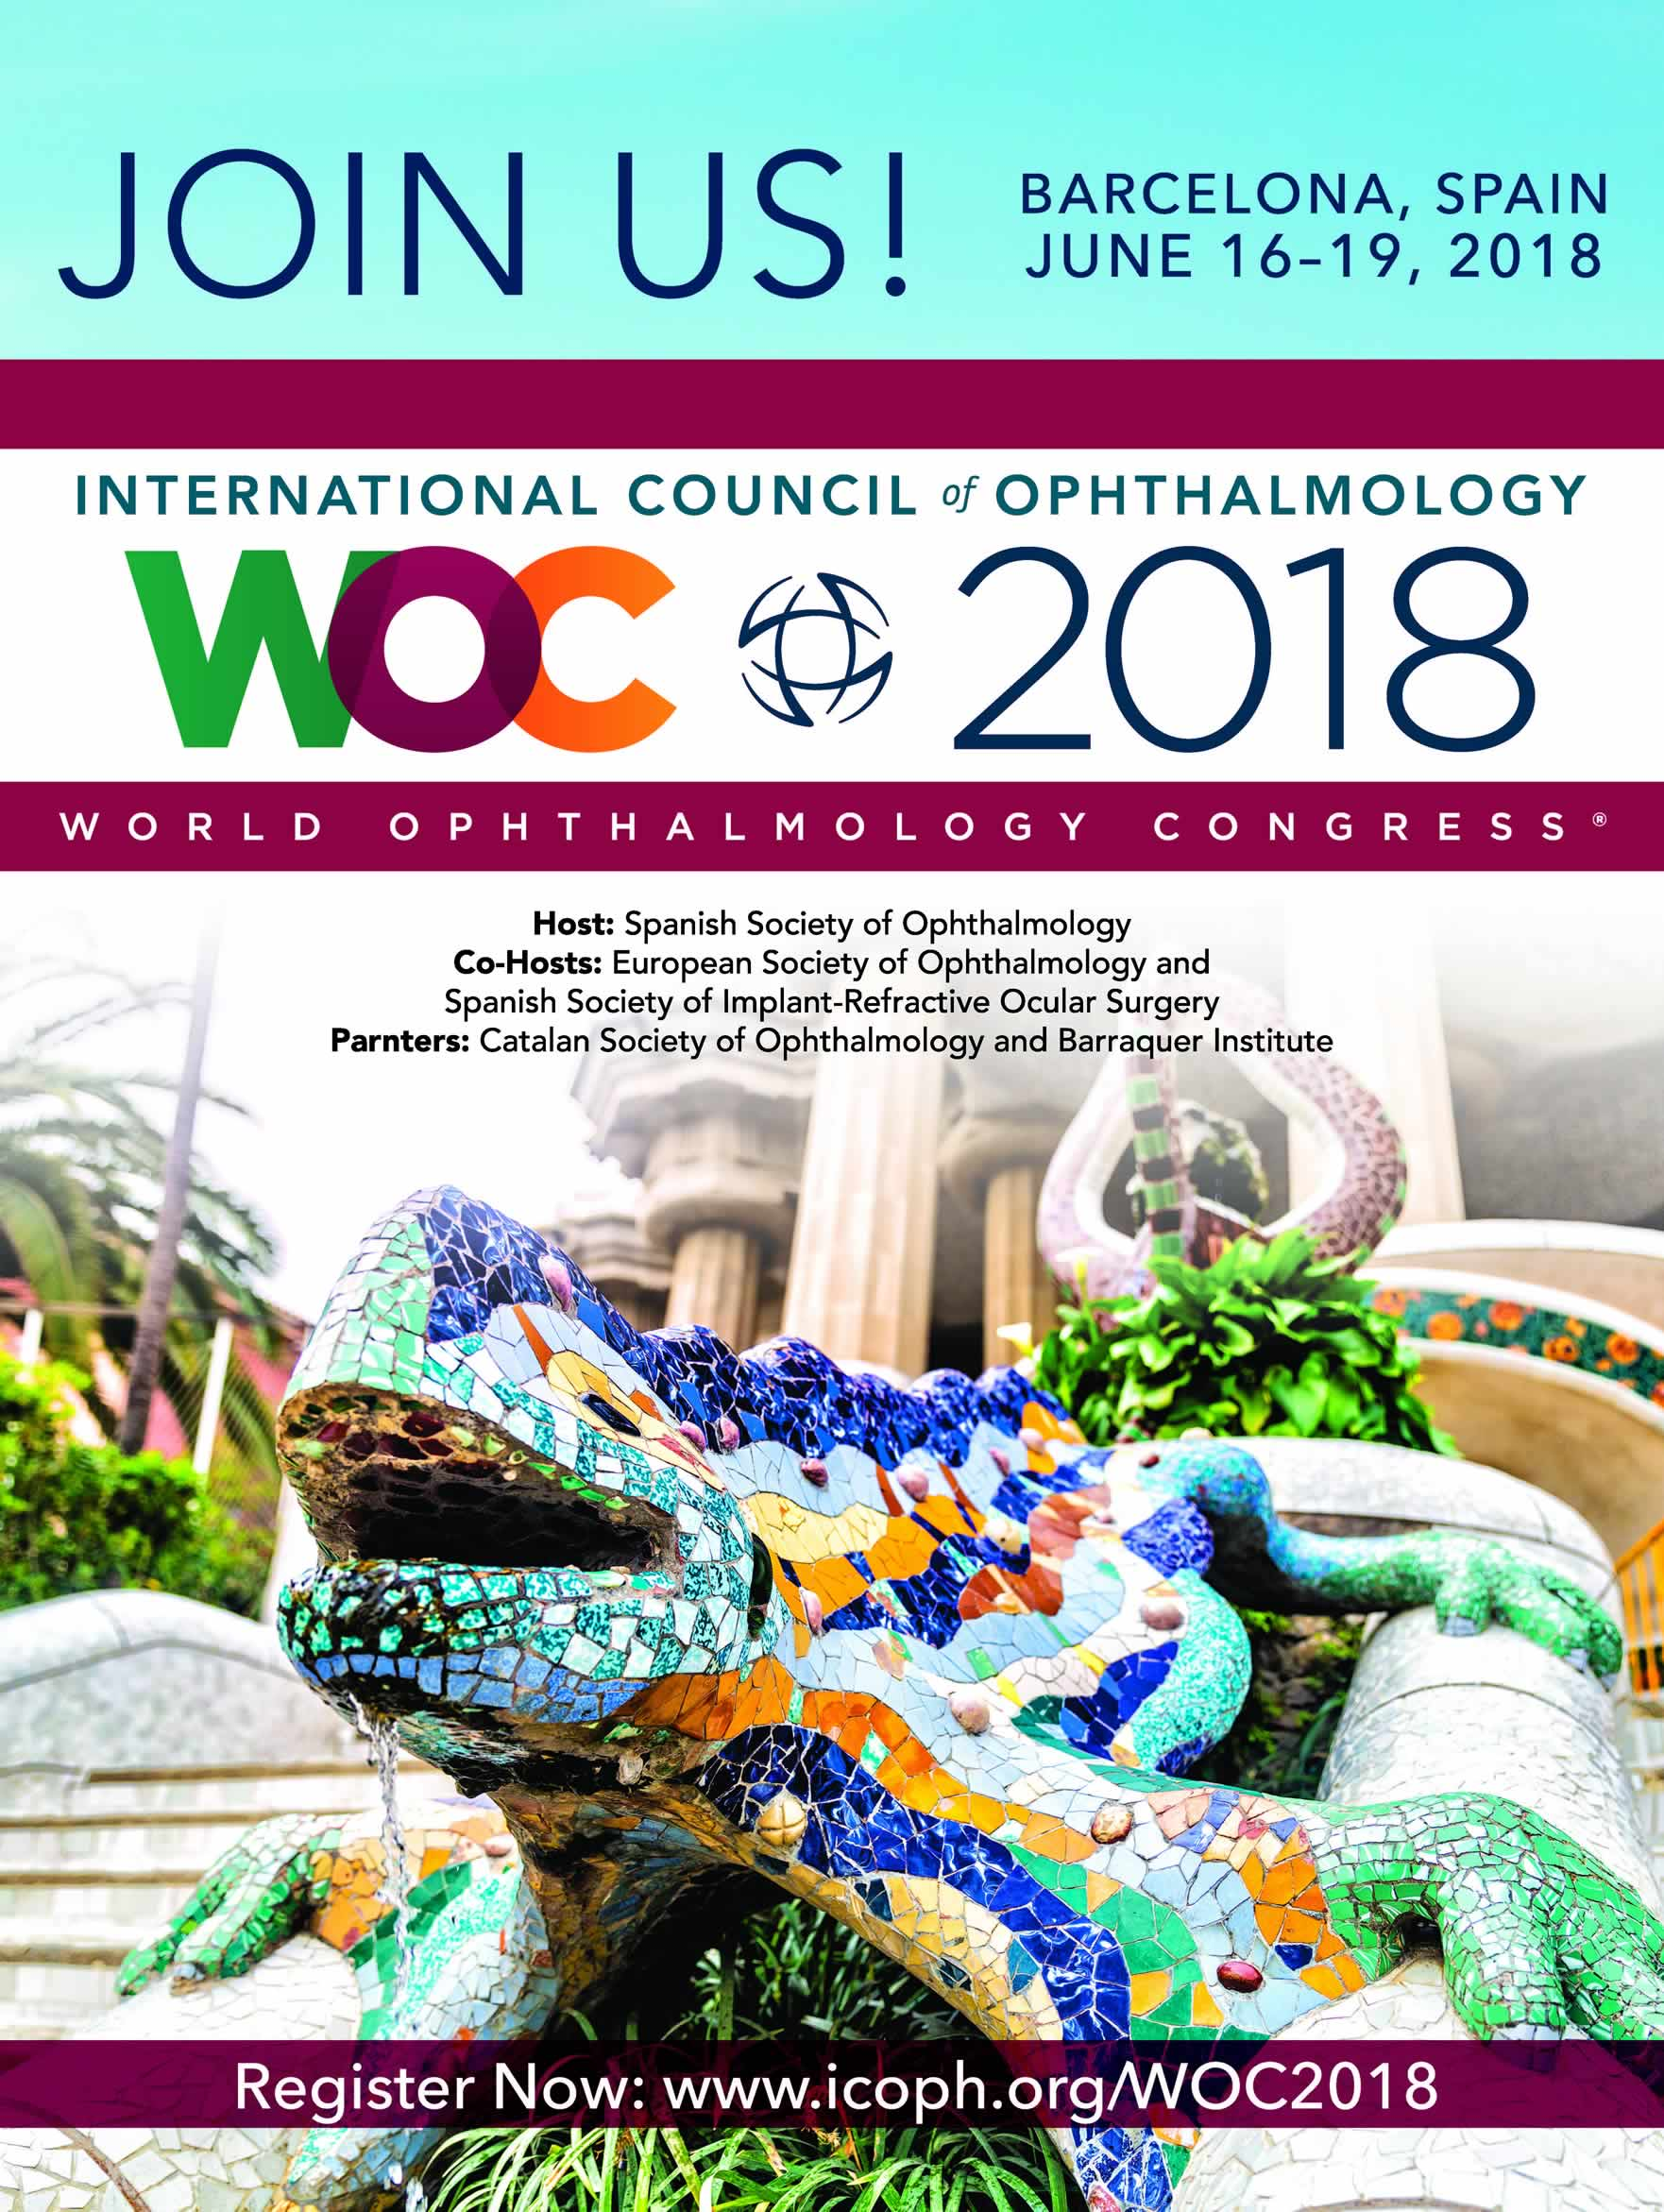 Qué es el World Ophthalmology Congress 2018